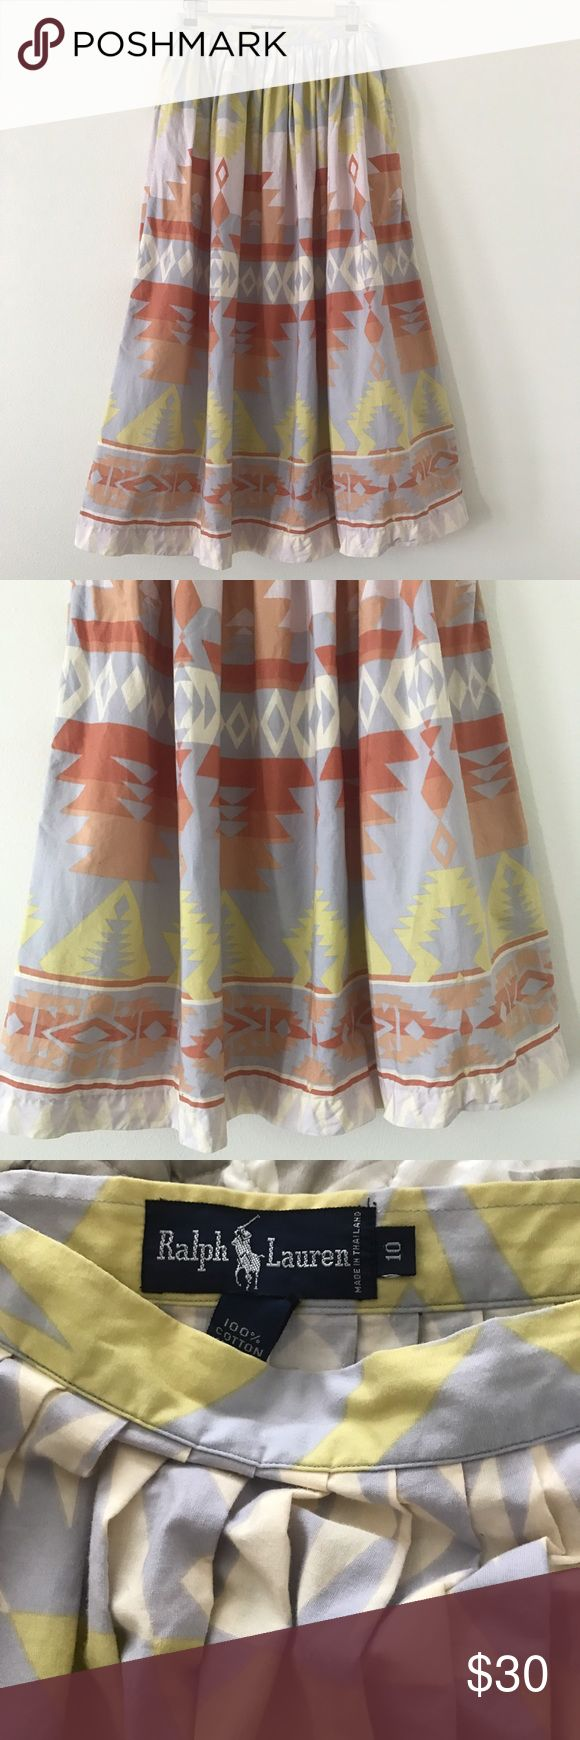 """Vintage Ralph Lauren Maxi Skirt Vintage Ralph Lauren maxi skirt with beautiful Aztec pattern in gorgeous colors. Pockets, side button closure. Size 10, approx measurements-waist is 28"""" and length is 36"""". A couple of pen sized dots and one tiny hole, but only noticeable when looking for faults. Ralph Lauren Skirts Maxi"""